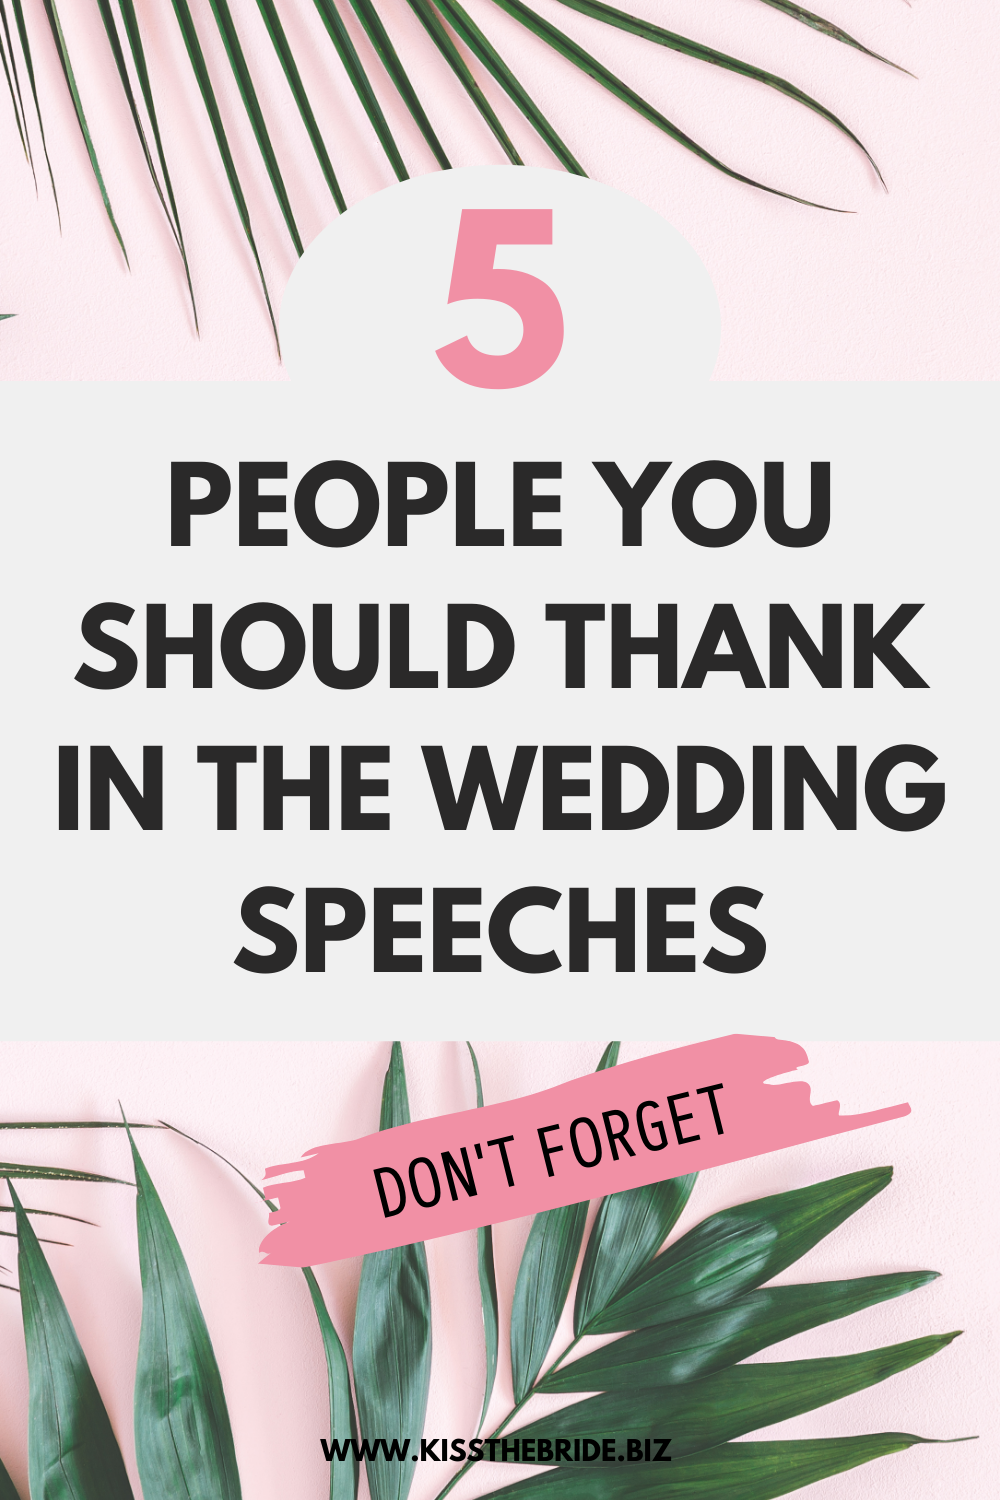 Wedding speech advice and help